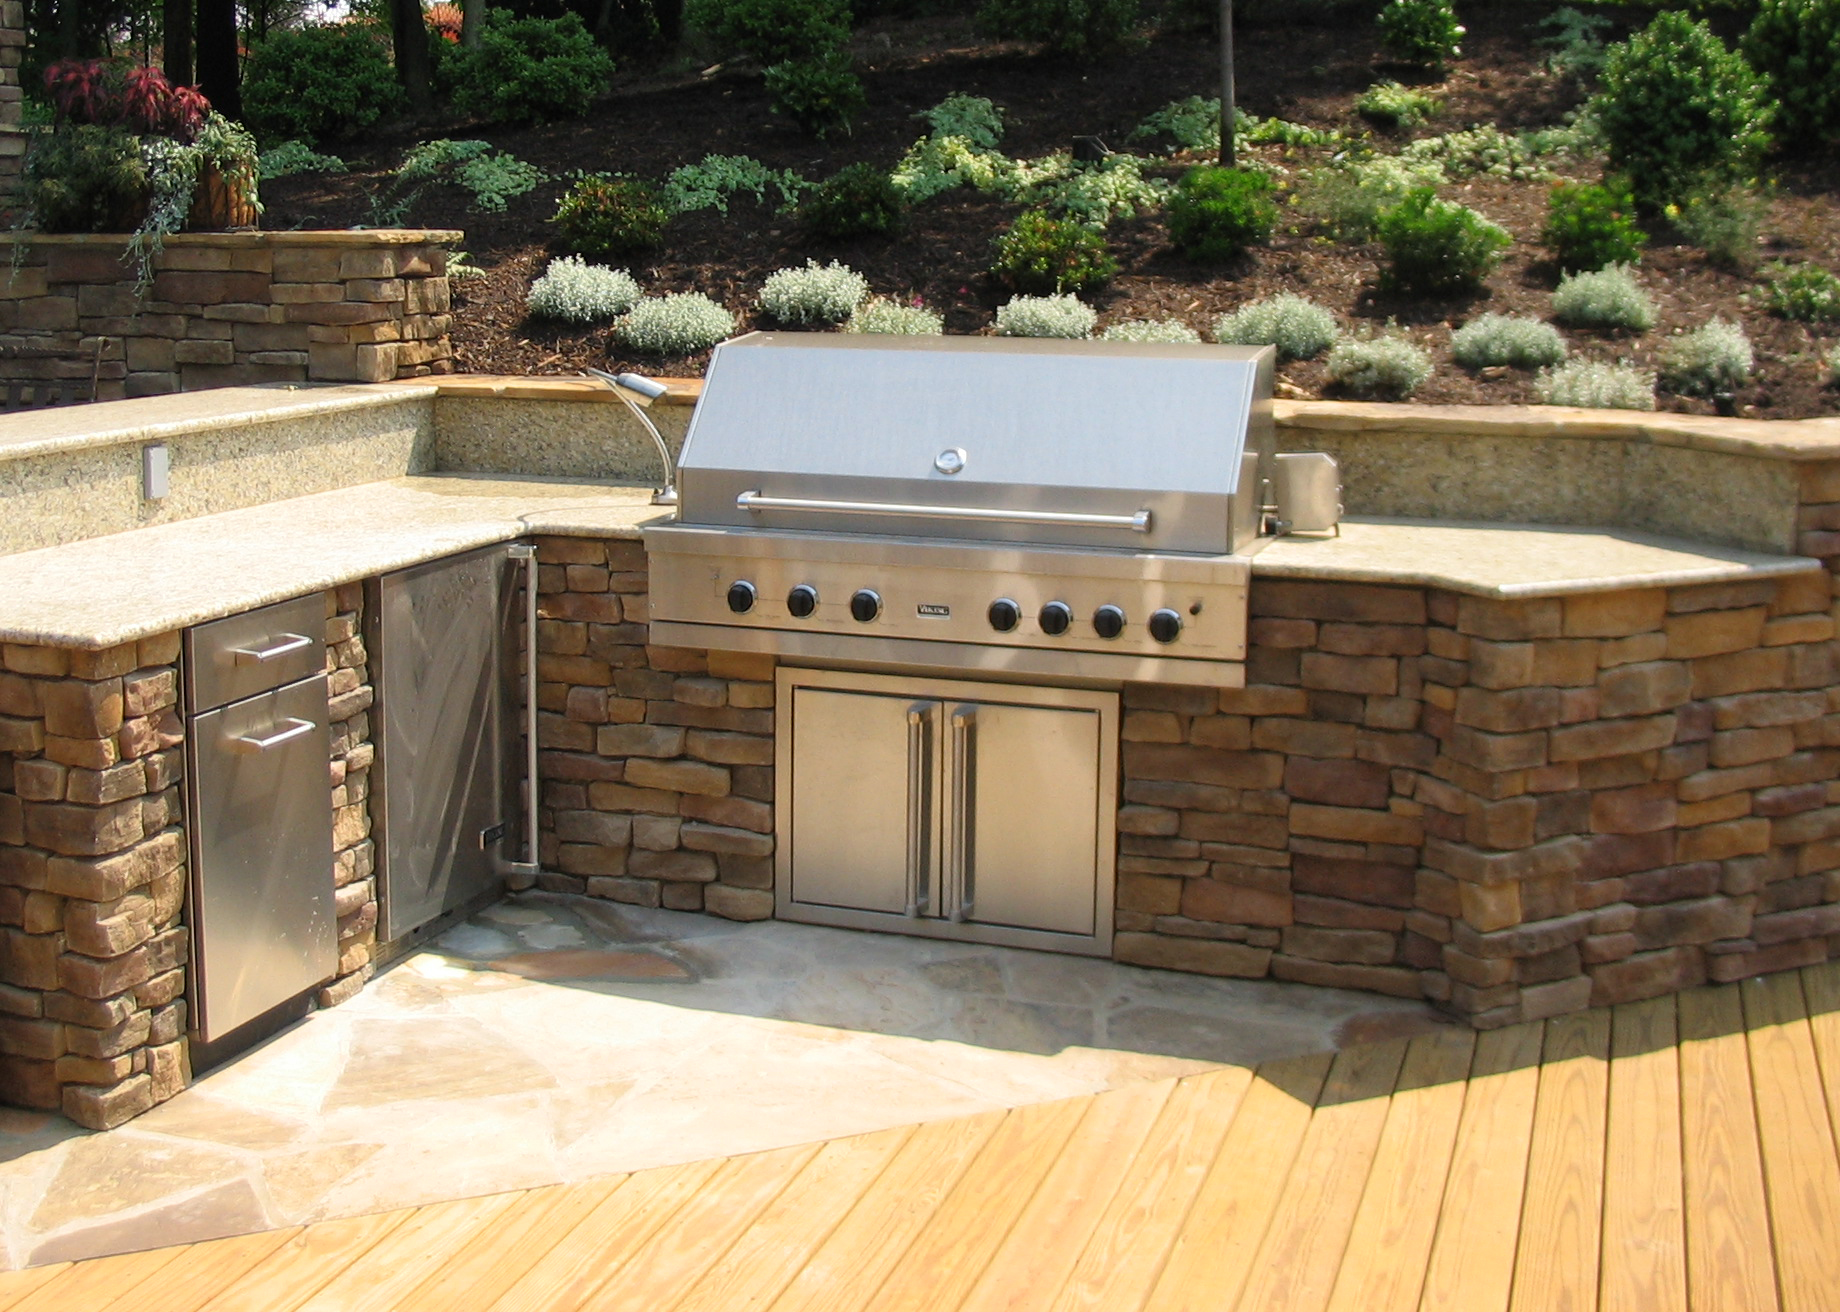 Designing an outdoor kitchen revolutionary gardens for Outdoor kitchen brick design